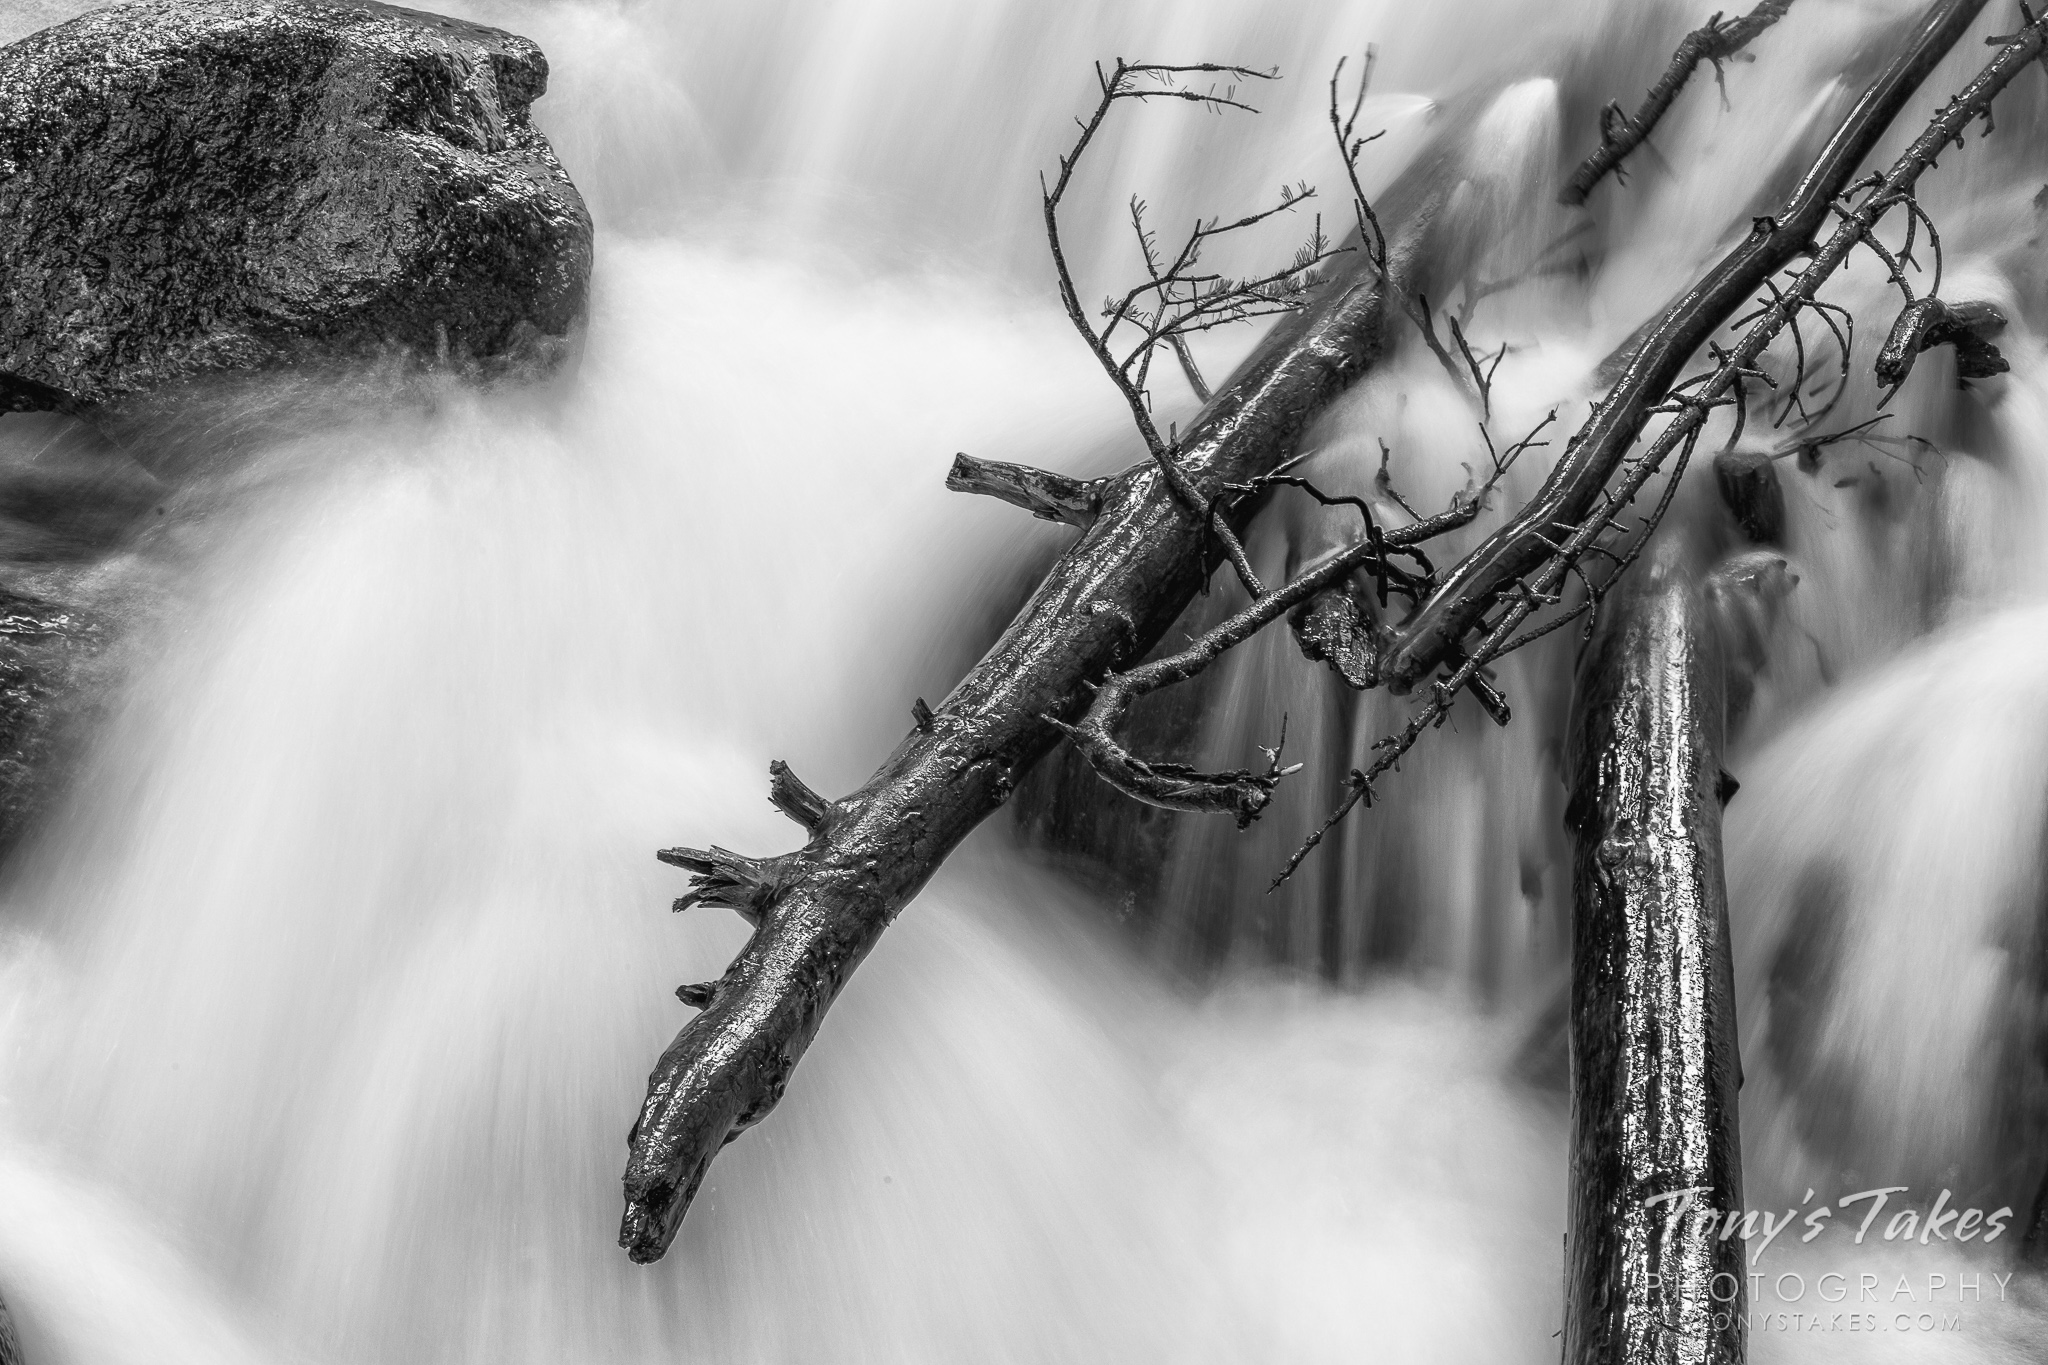 Motion-blurred waters in a mountain creek rush by fallen logs. (© Tony's Takes)